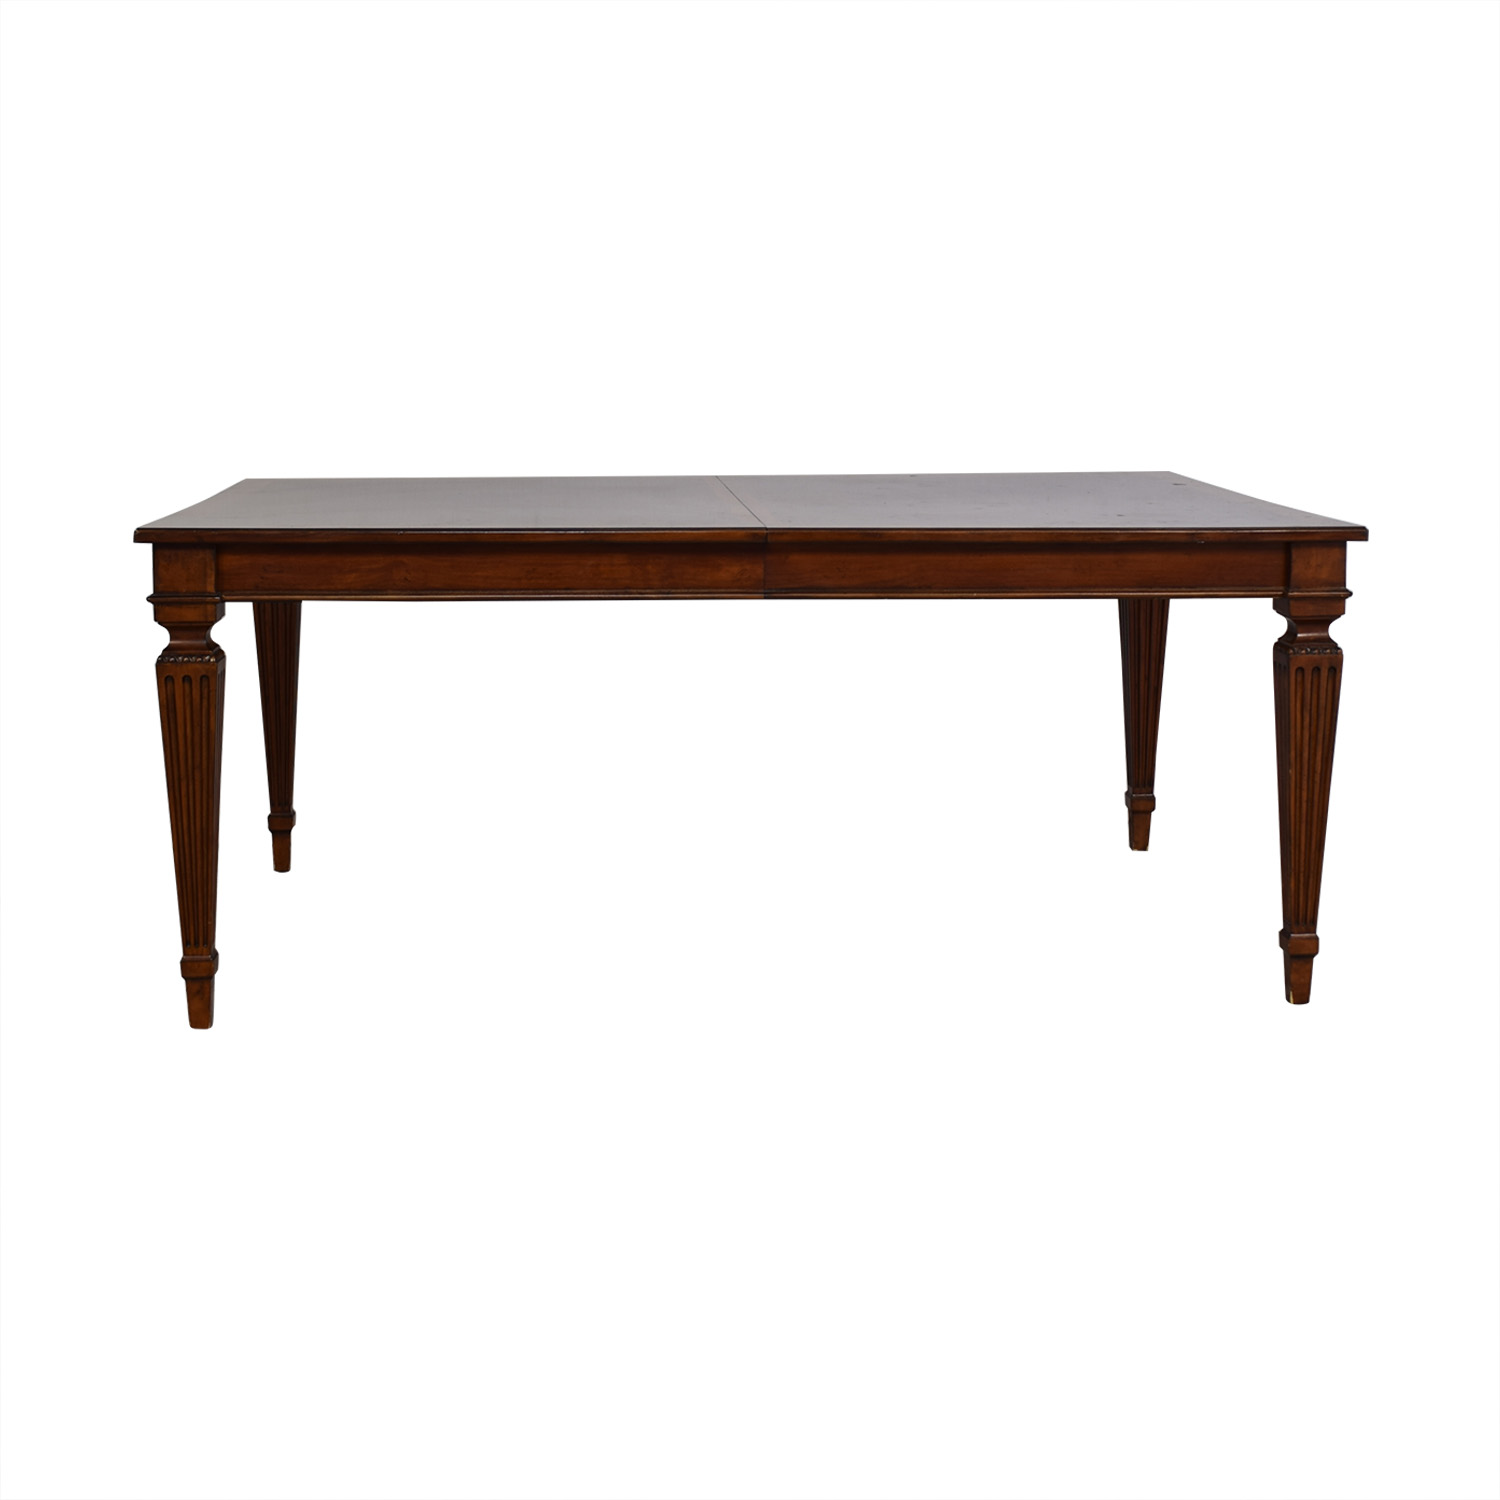 Ethan Allen Ethan Allen Goodwin Dining Table nyc